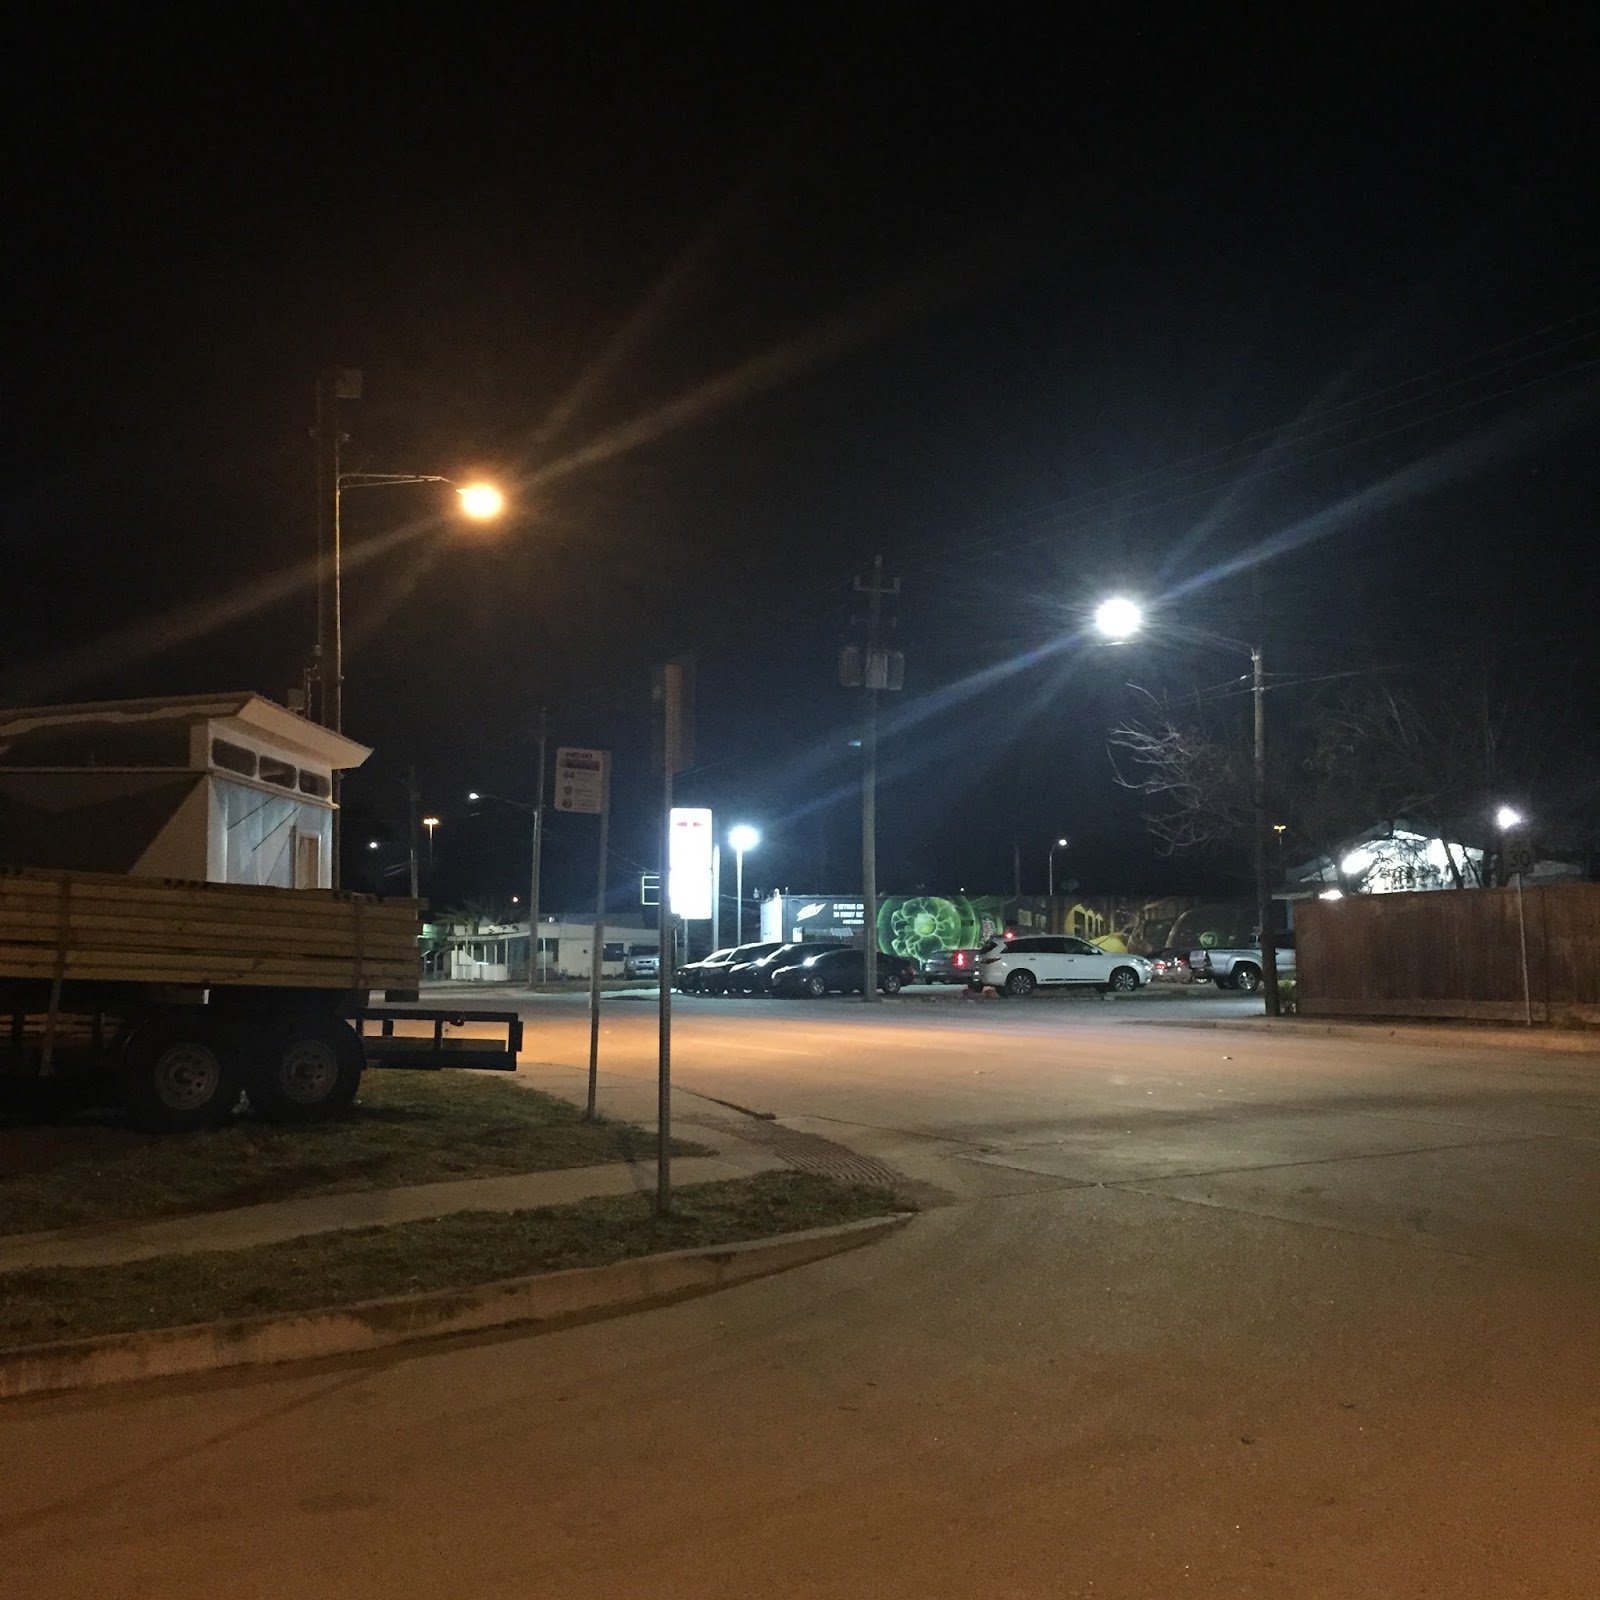 high pressure sodium light left and a new led light right on